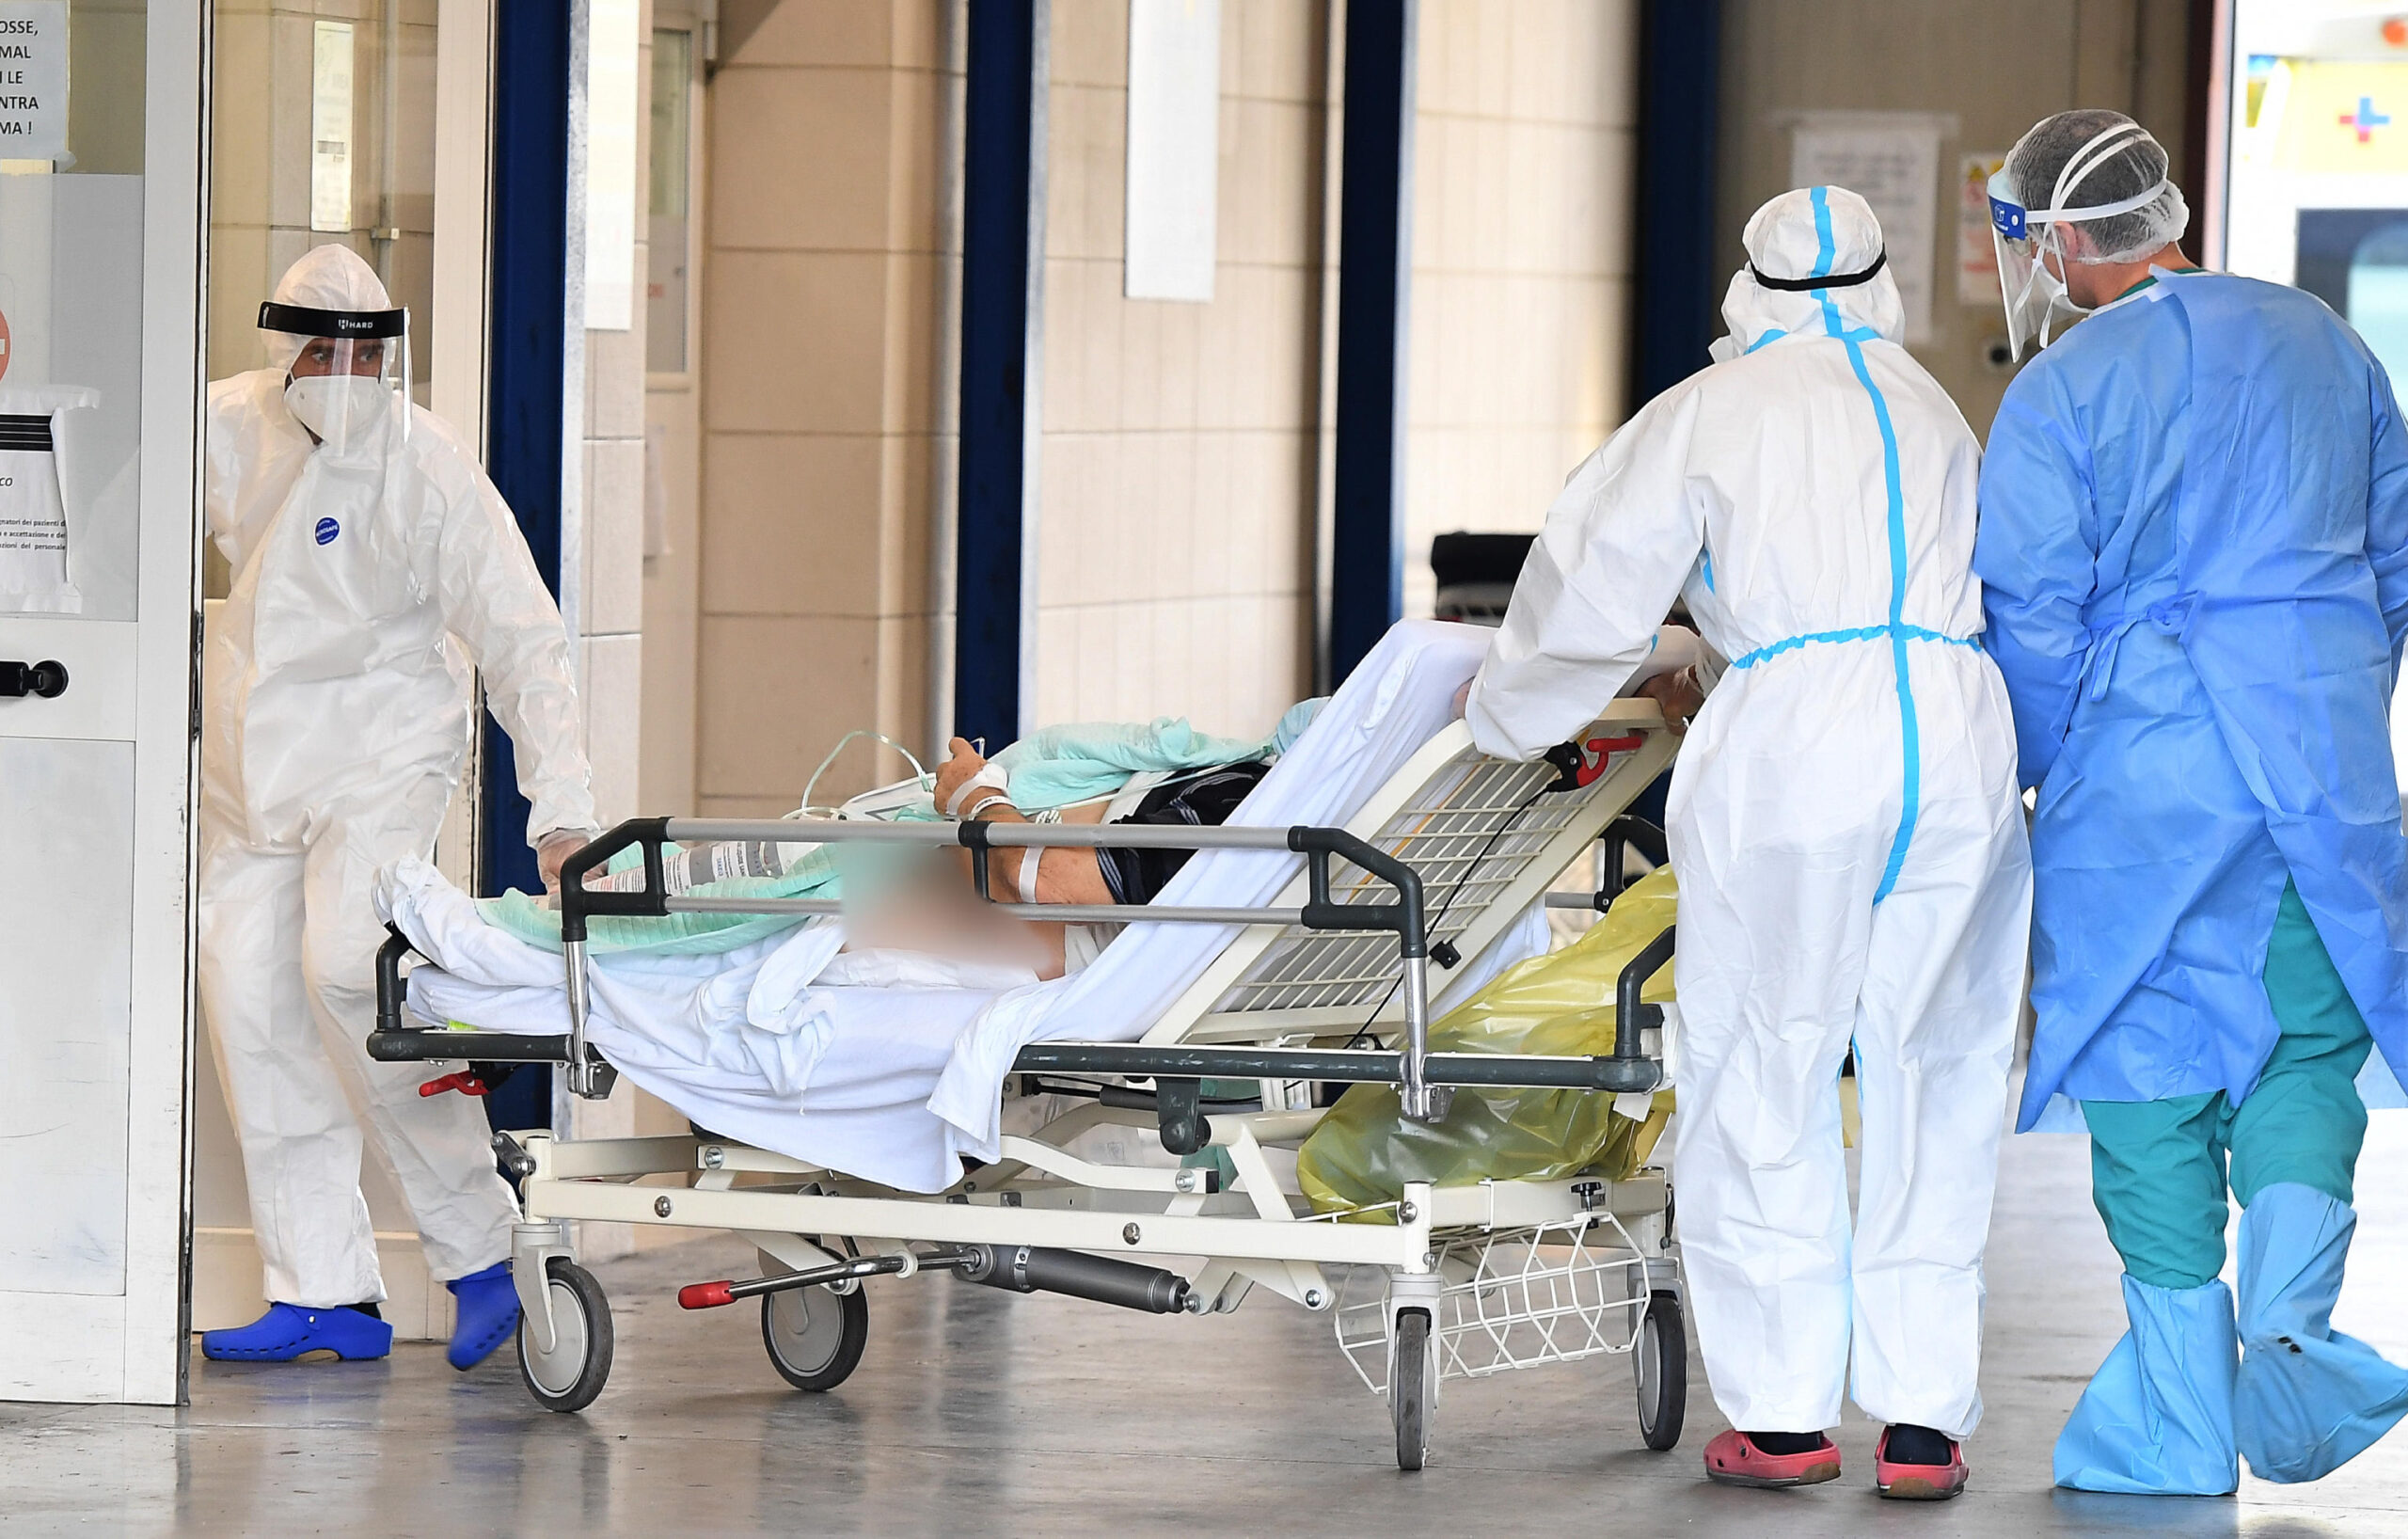 Second wave of the Covid-19 Coronavirus pandemic in Italy